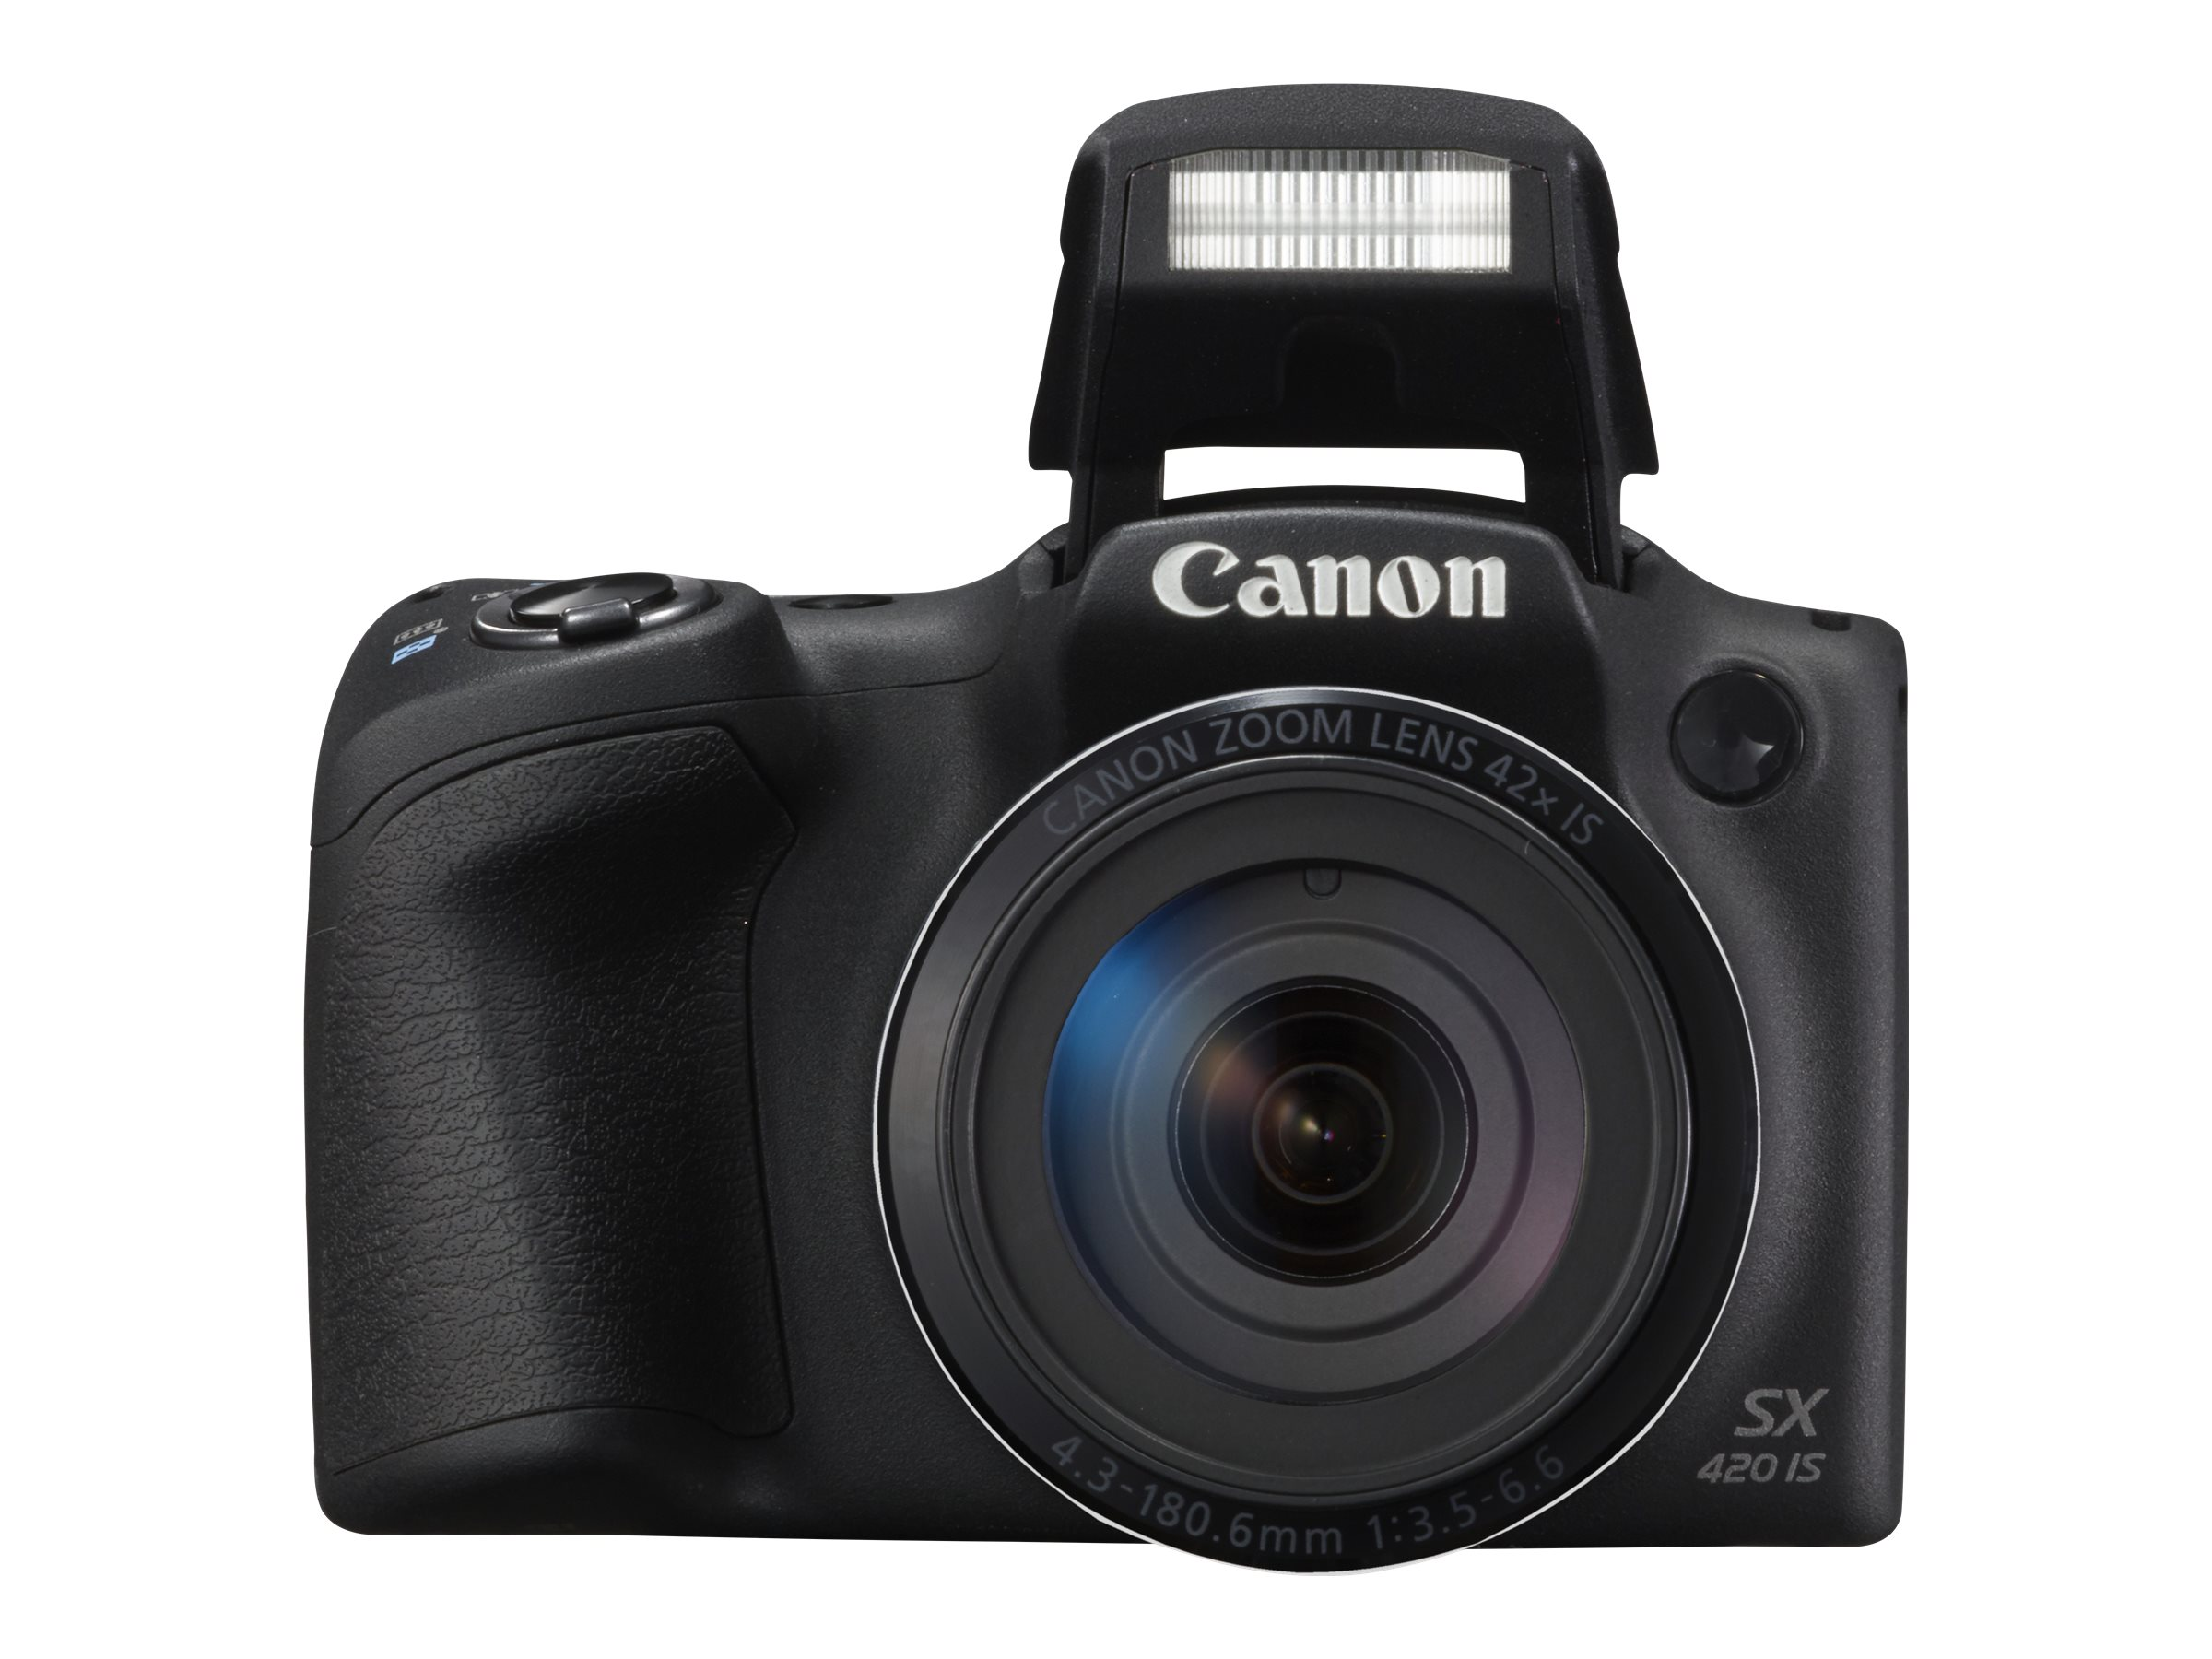 Canon PowerShot SX420 IS Digital Camera, Black, 1068C001